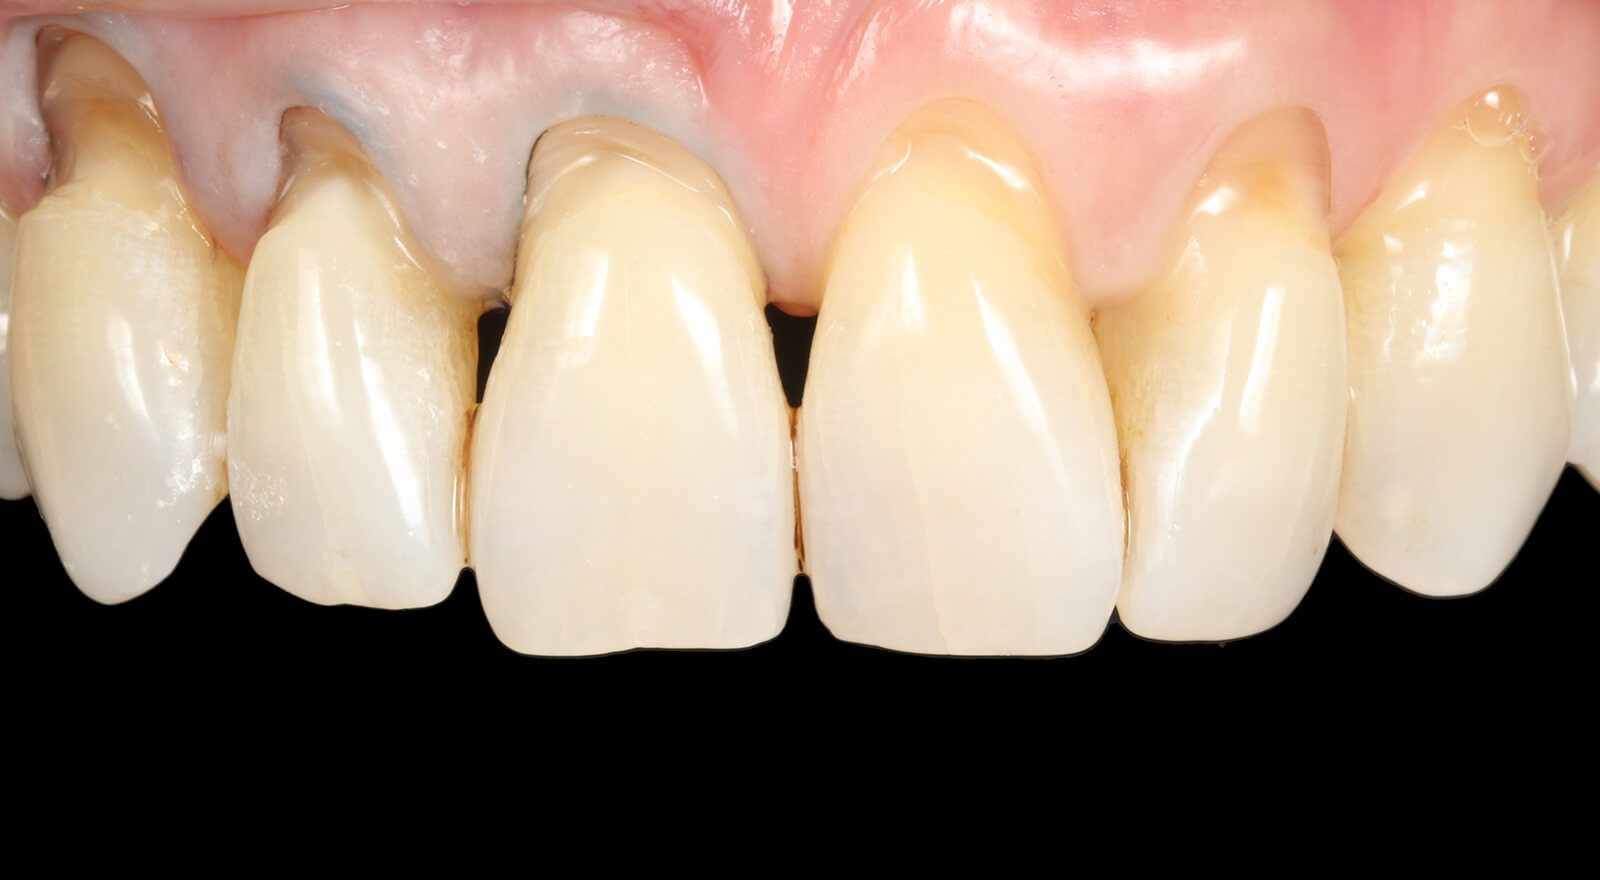 Gap Closure Bonding Composite Teeth Bonding Dental Bonding Bournemouth Poole